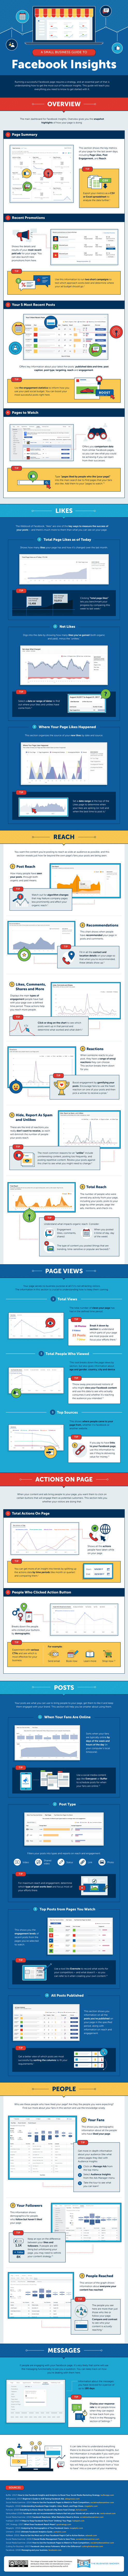 A Small Business' Guide to Facebook Insights (INFOGRAPHIC)